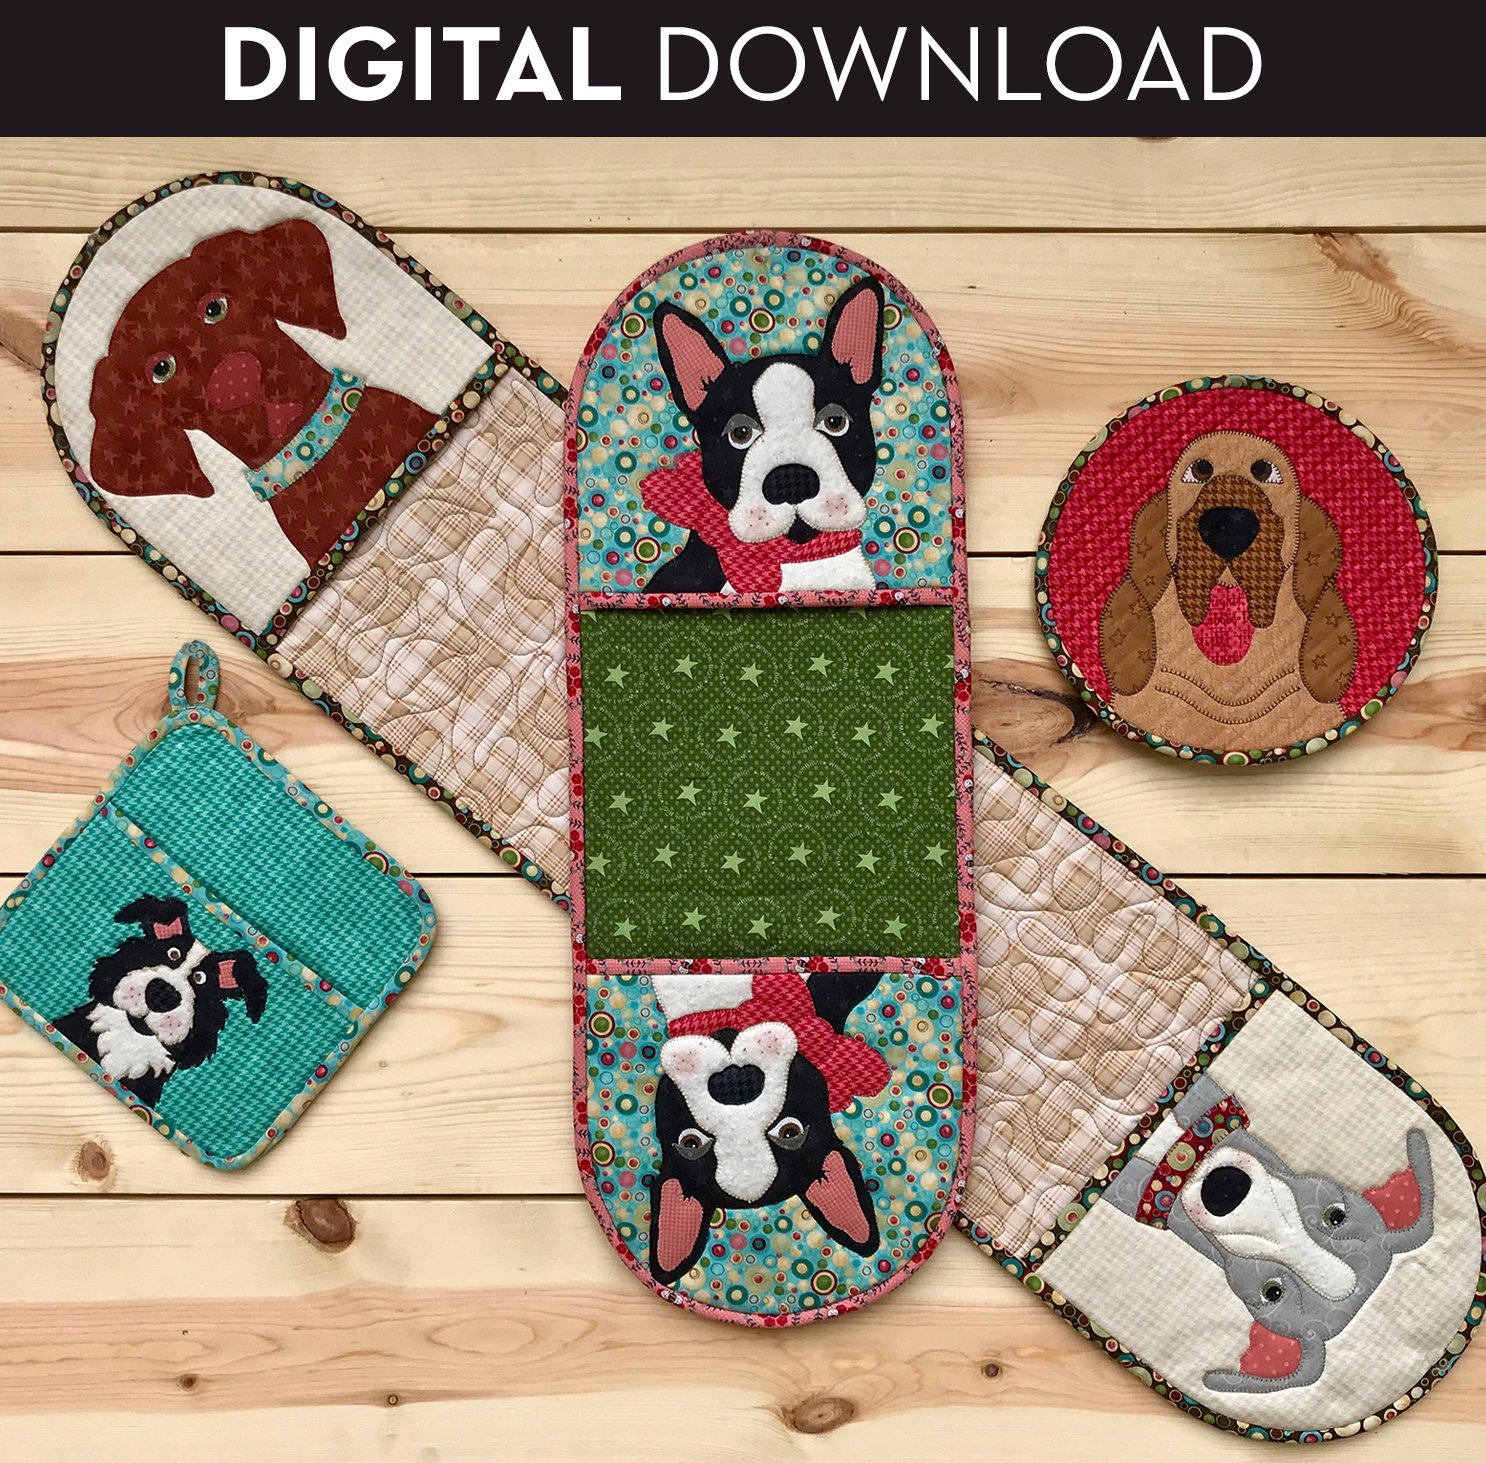 Doggy Hot Pads - Download (Appliques not included)